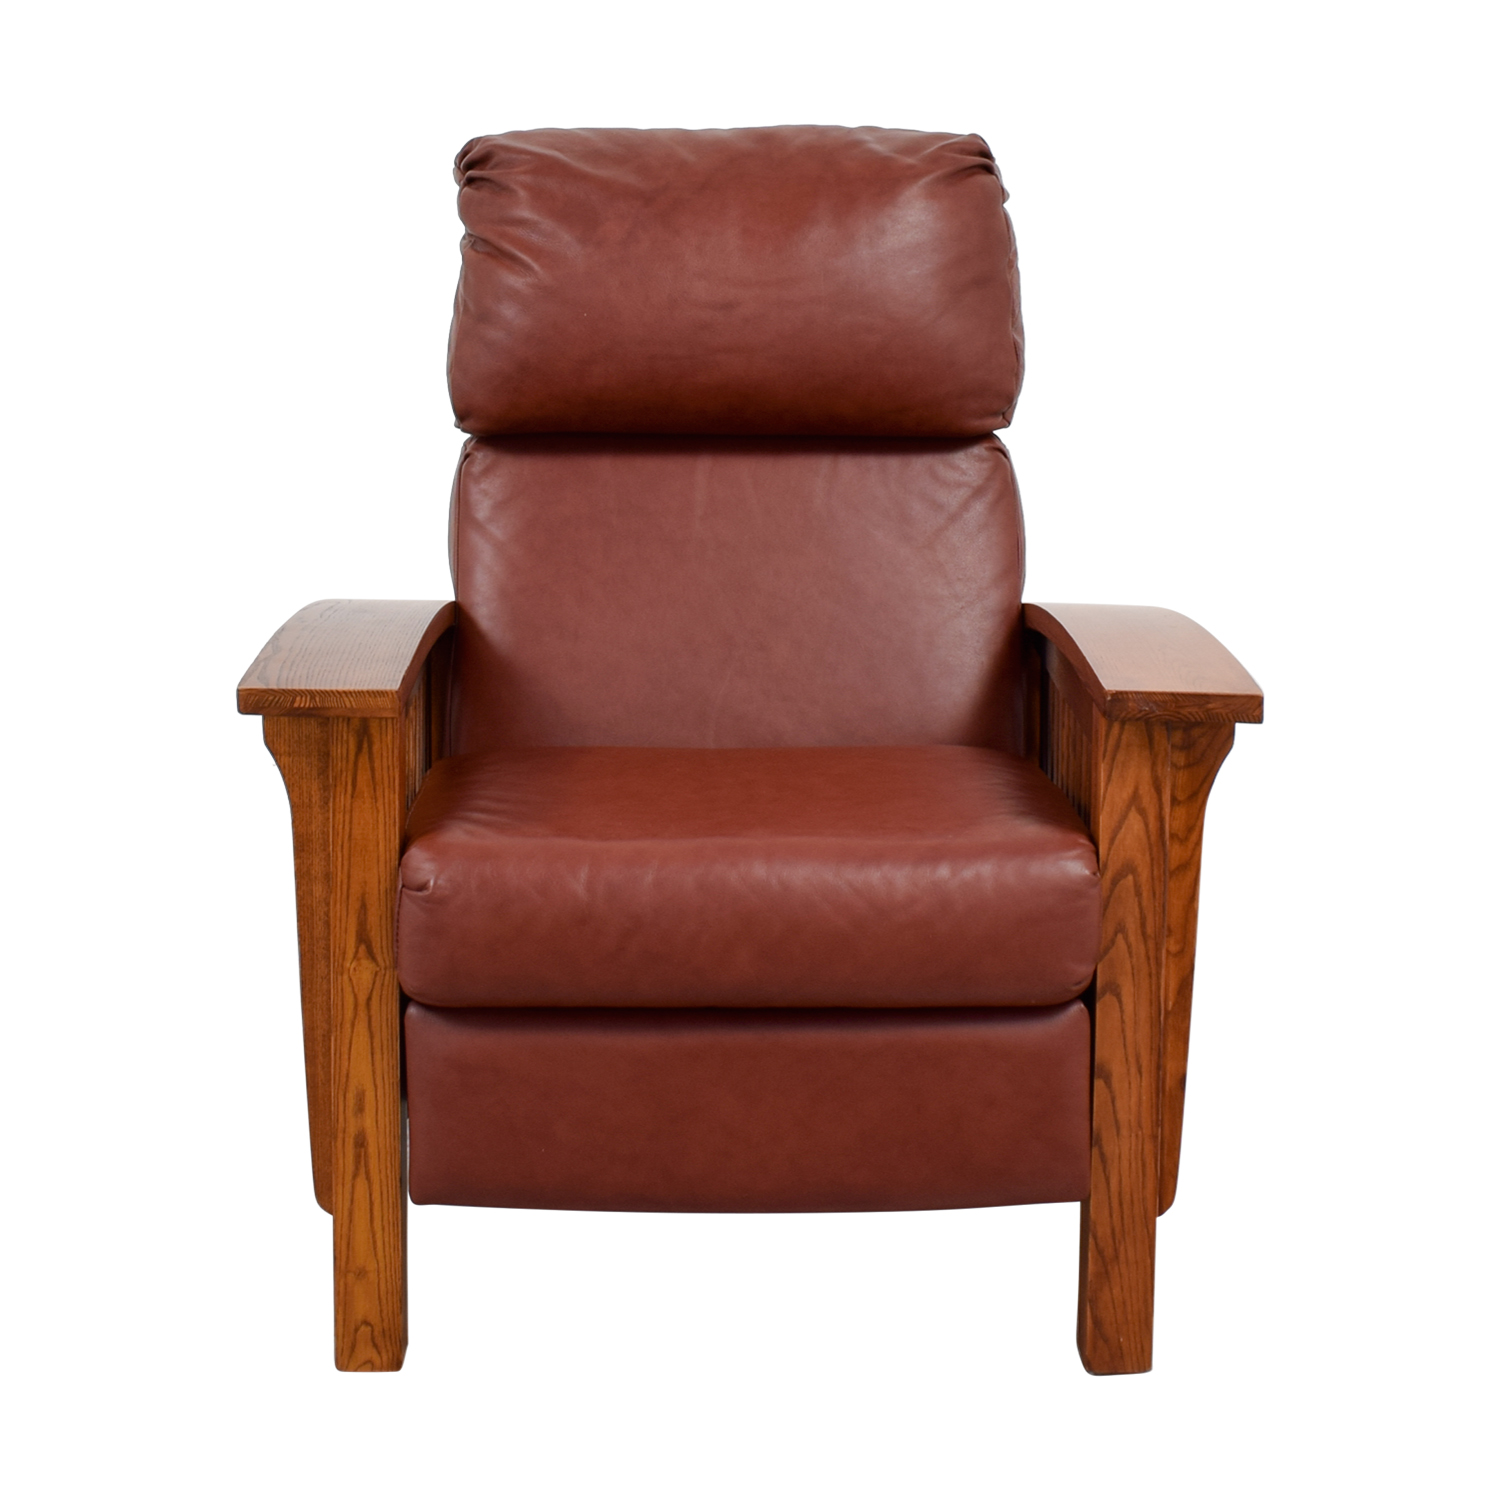 shop Macy's Macy's Brown Leather and Wood Recliner online